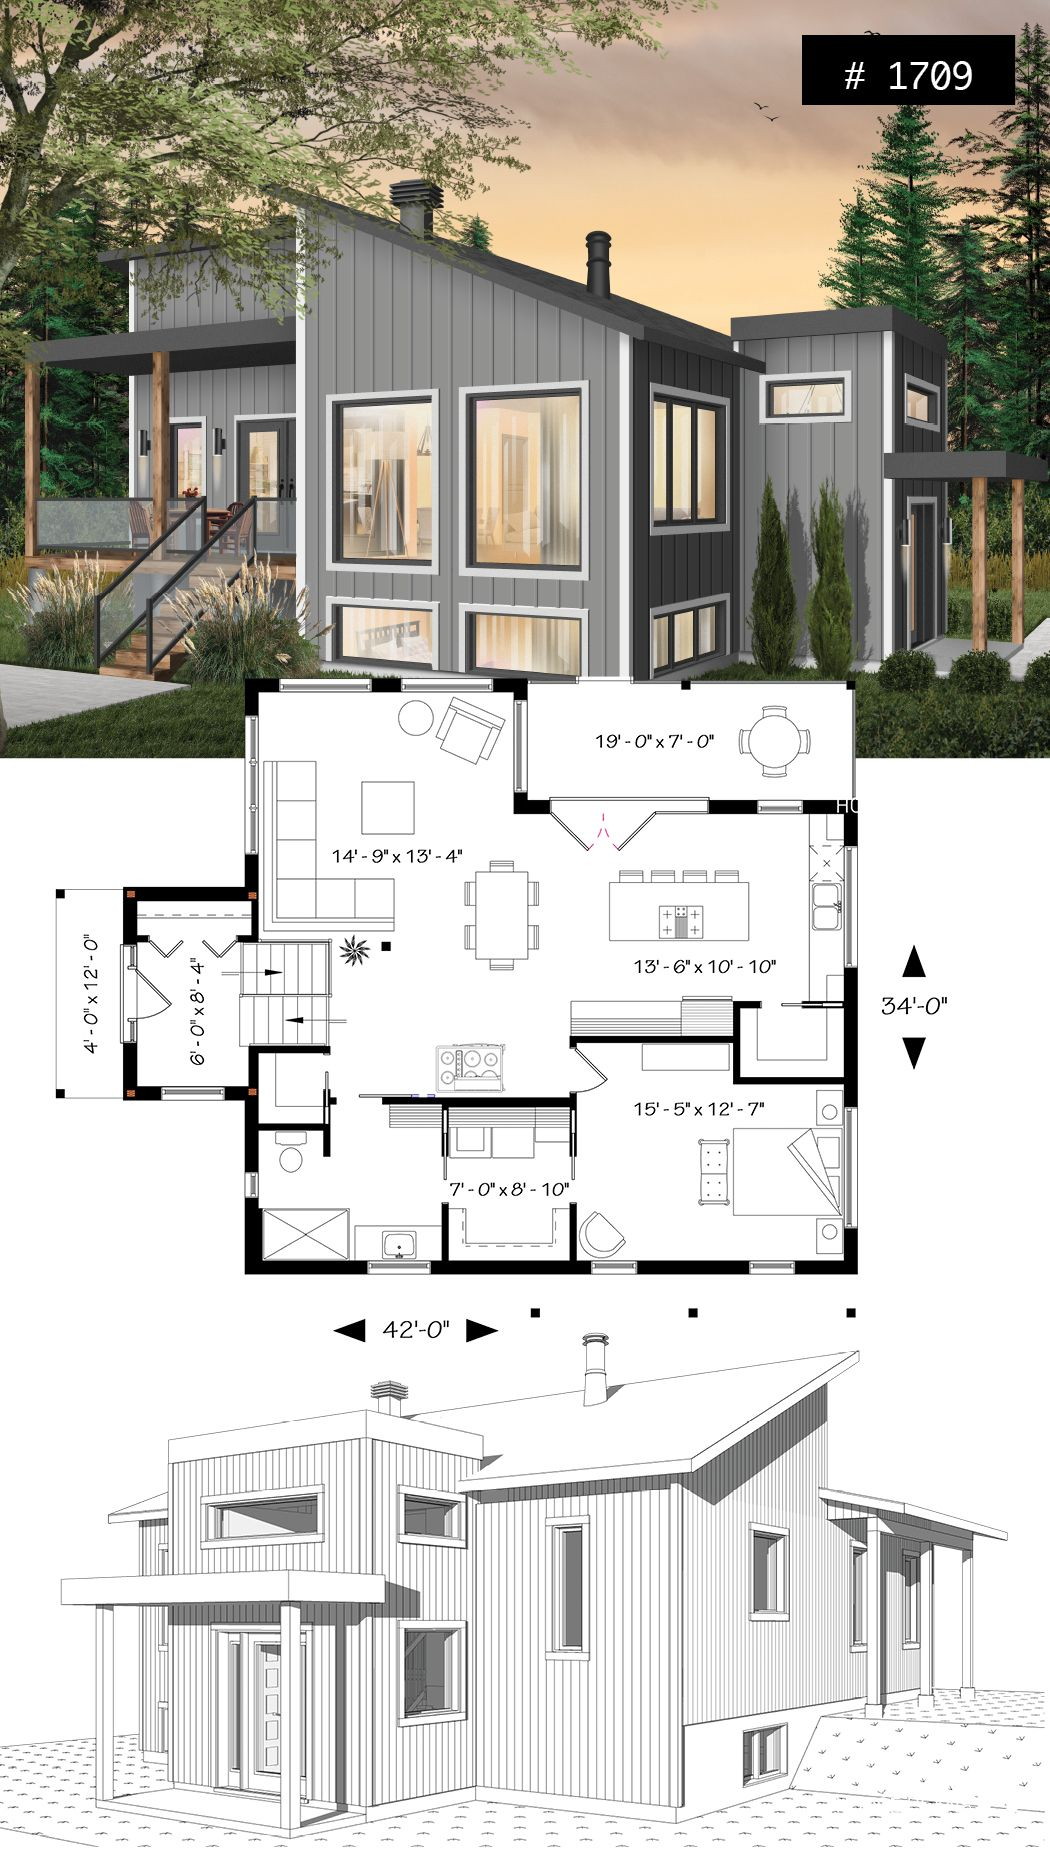 Small modern house plan for corner lot master suite open space huge windows